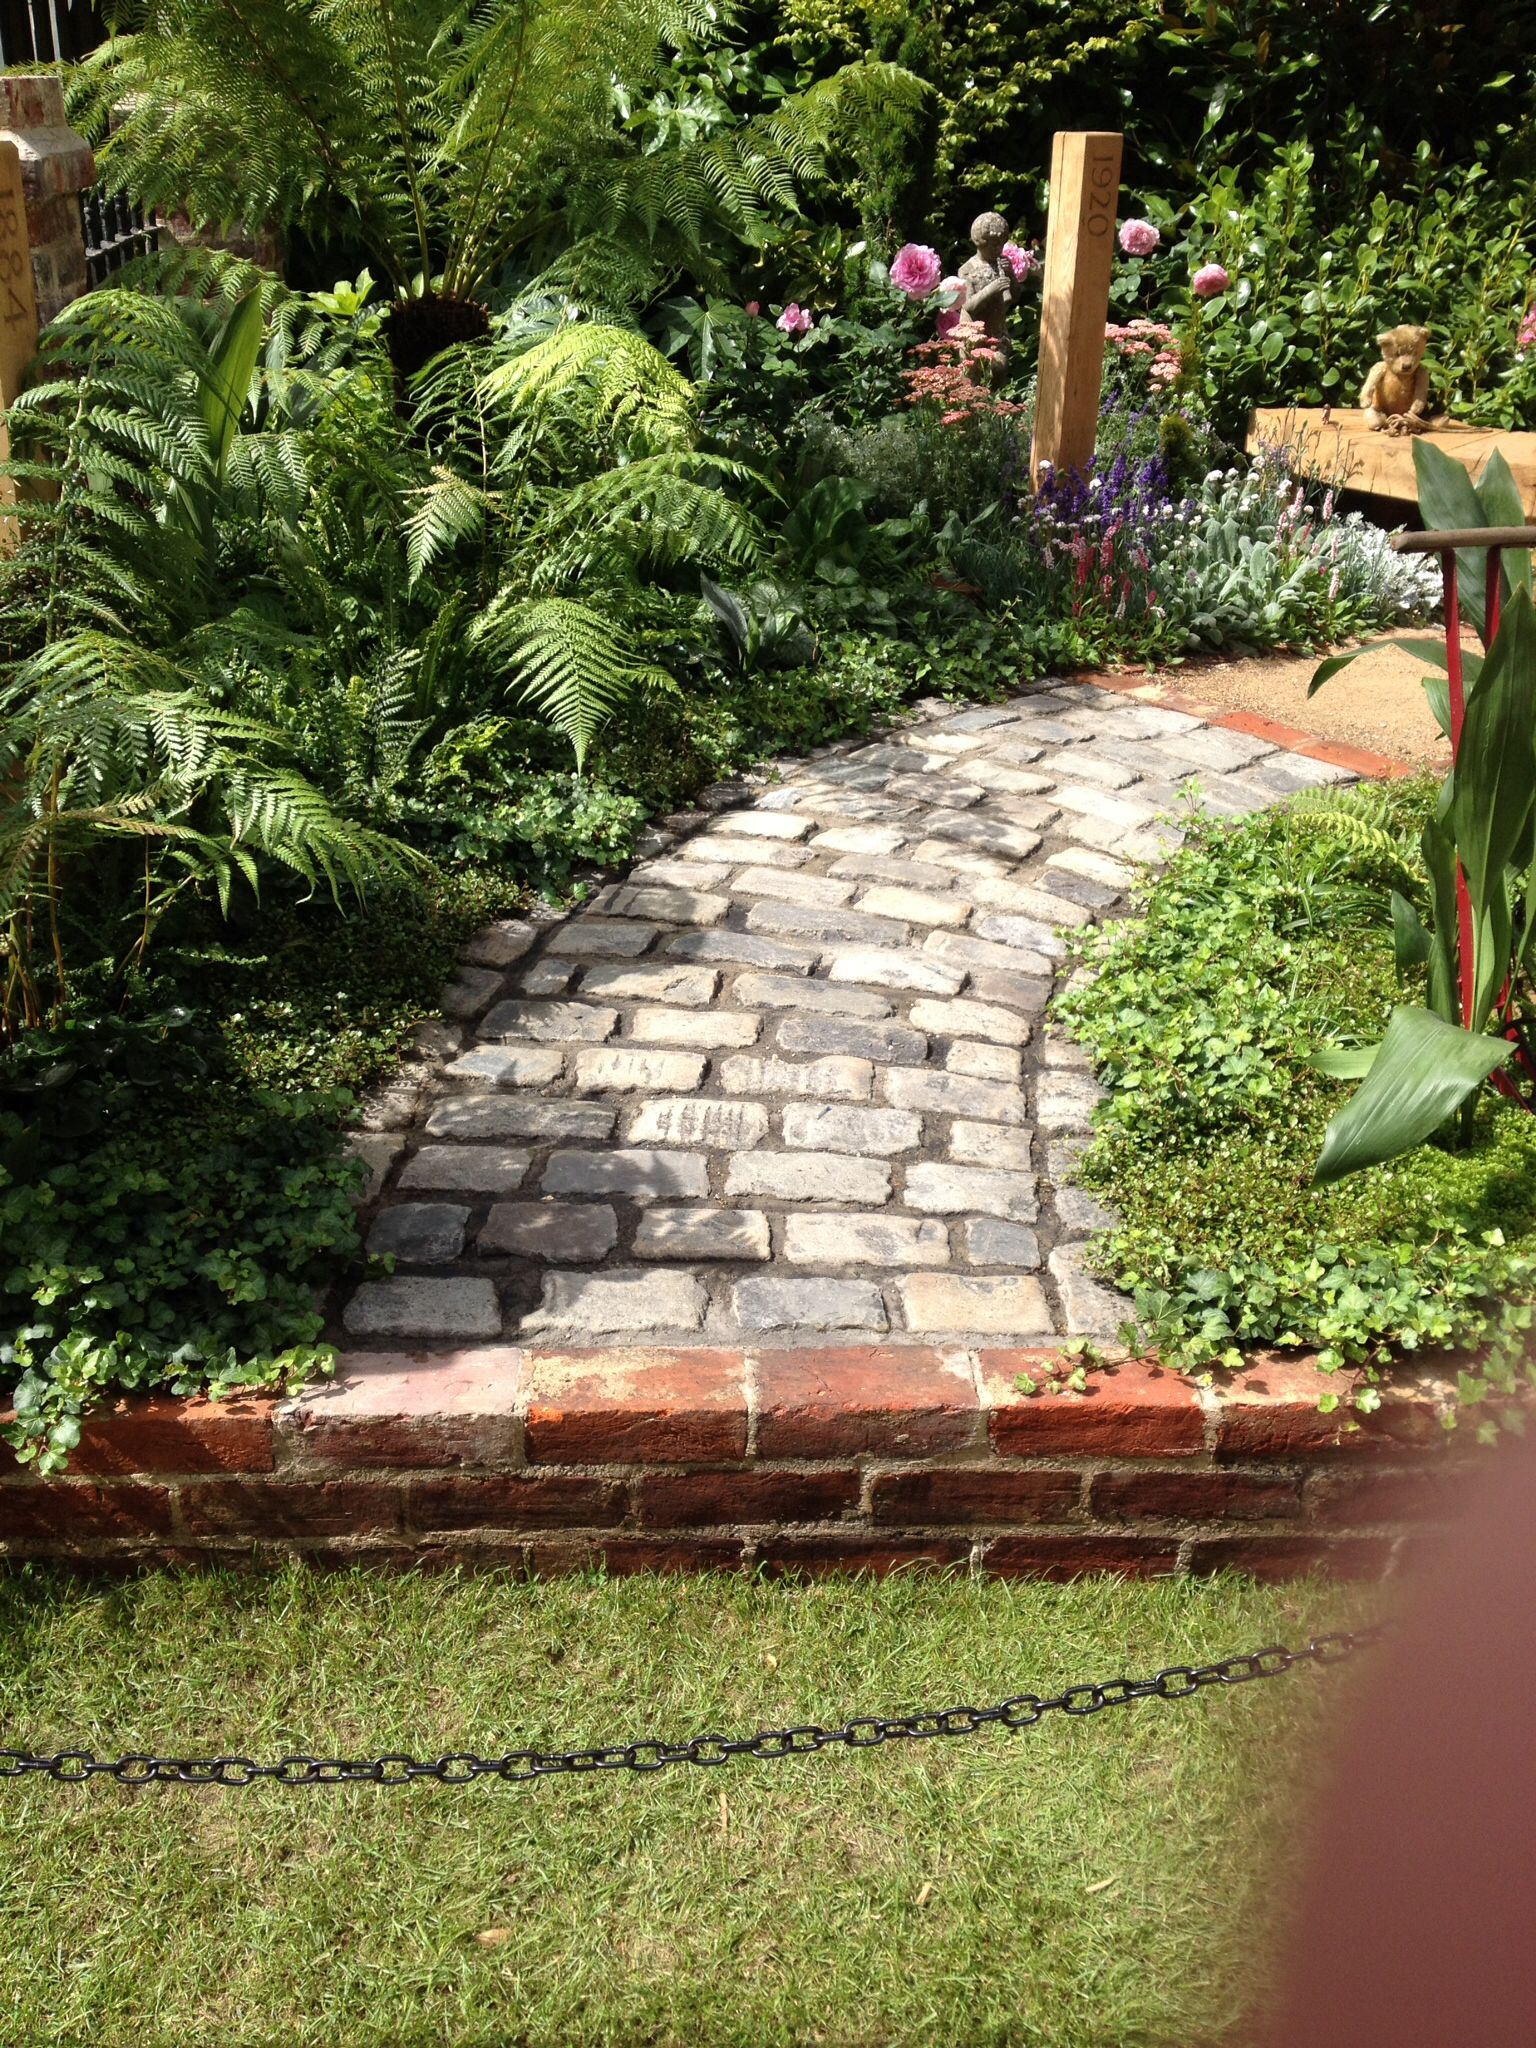 hampton court palace flower show 14 walkway design on extraordinary garden path and walkway design ideas and remodel two main keys id=87142